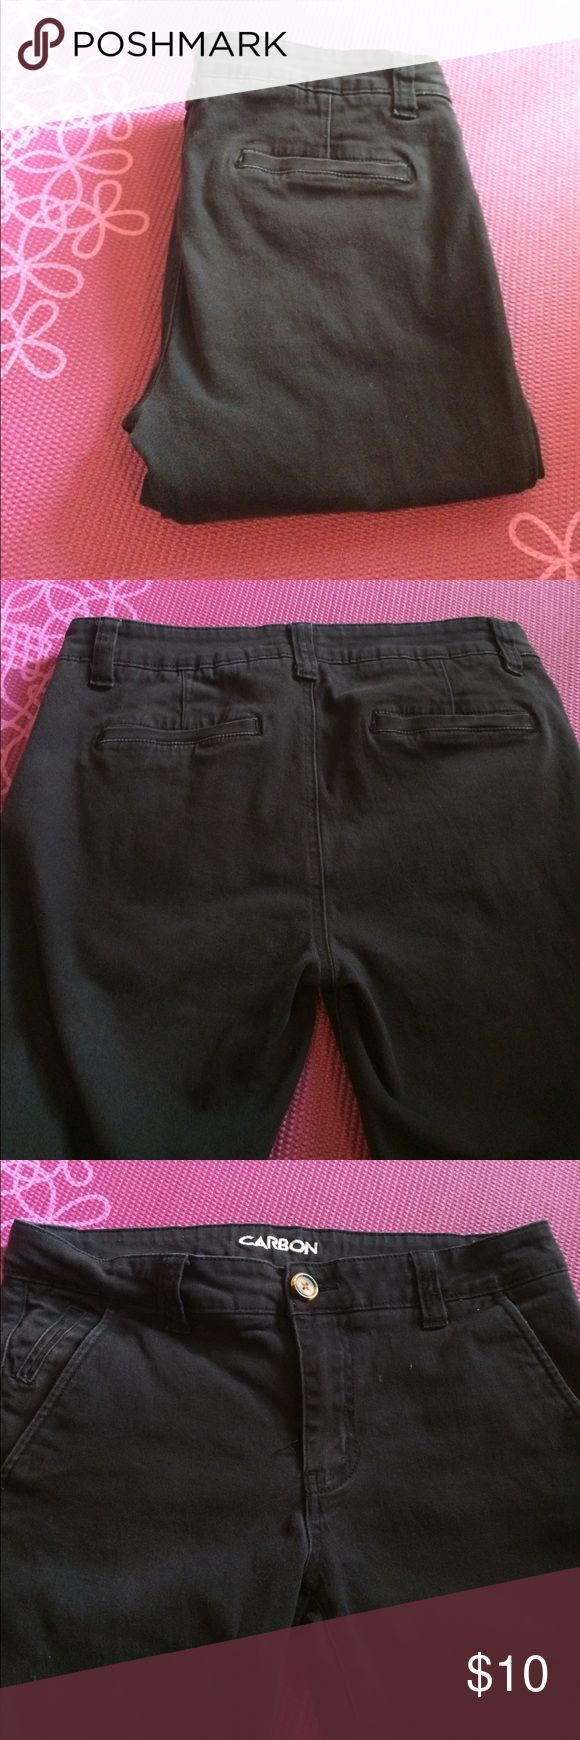 CARBON® men's slim jeans In good used condition. Slight discoloration. Size 30/32 CARBON Jeans Slim